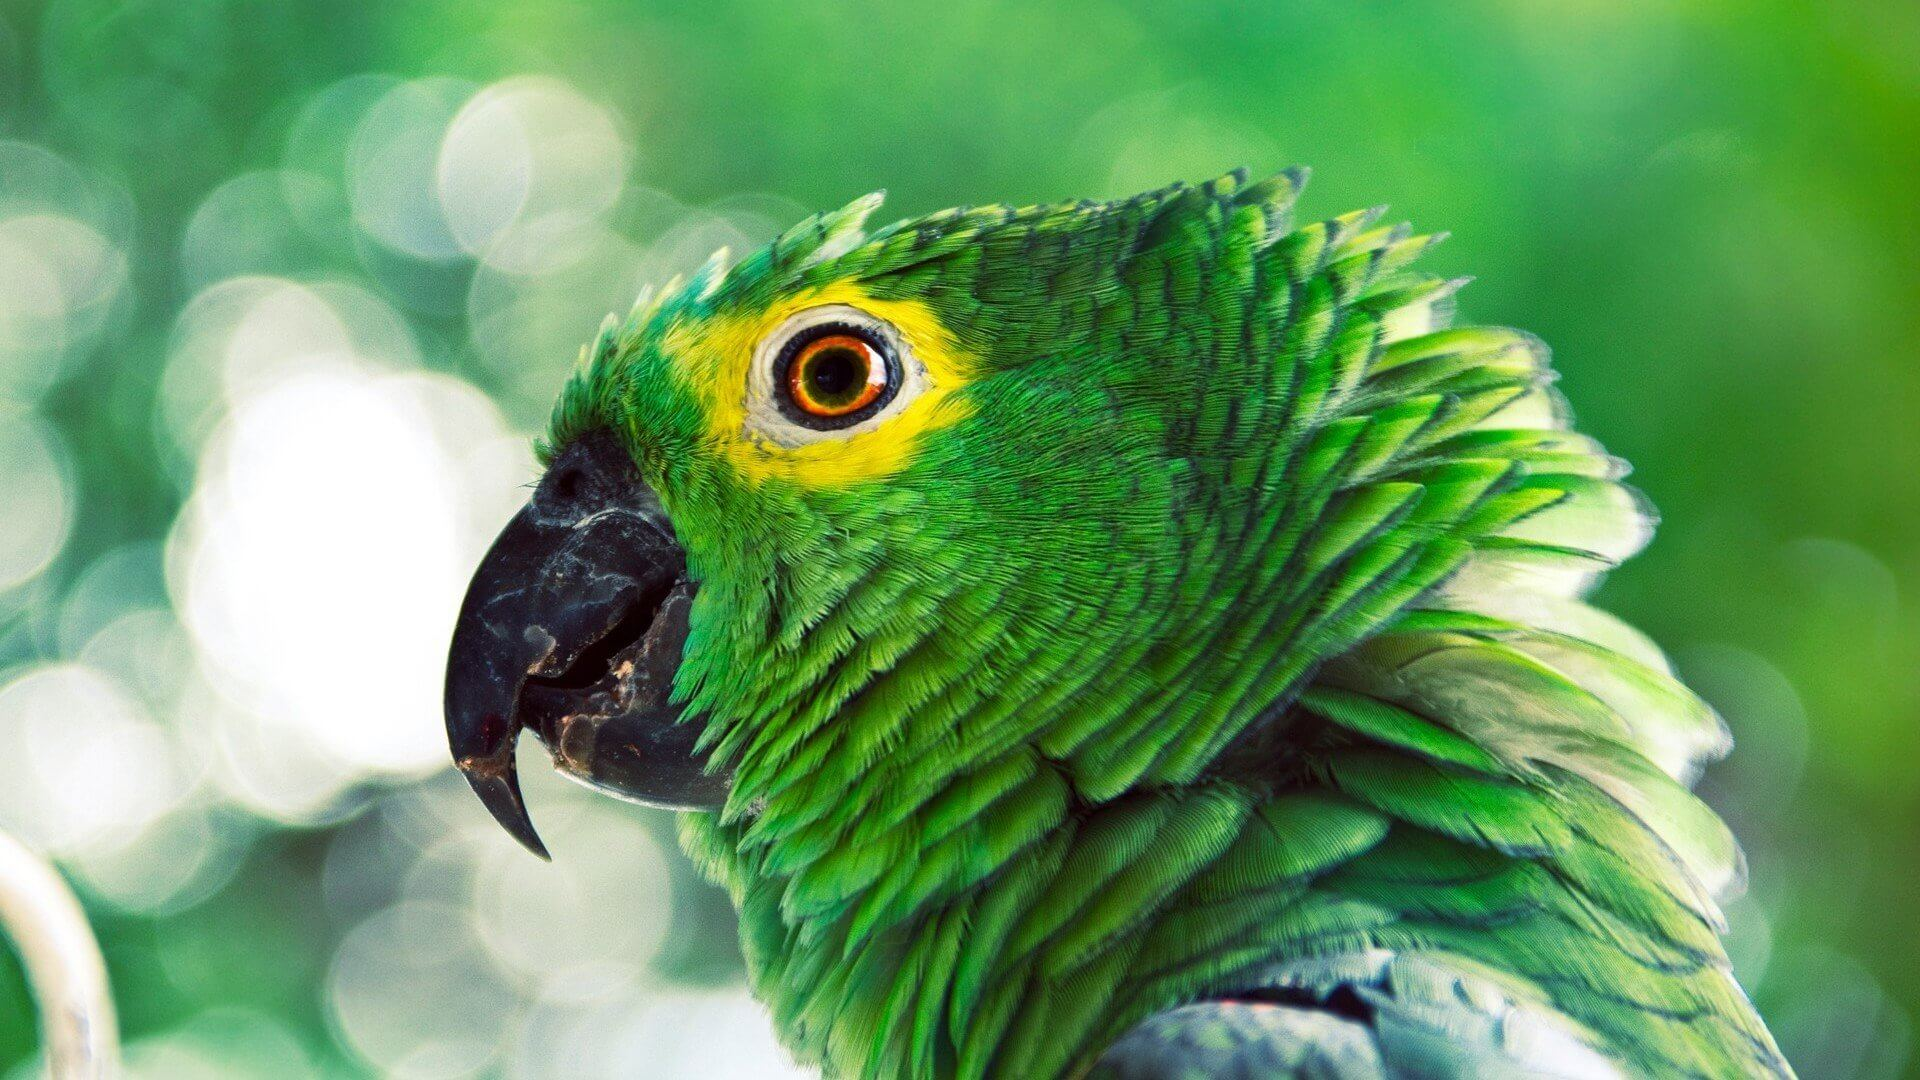 The parrot is an exotic bird